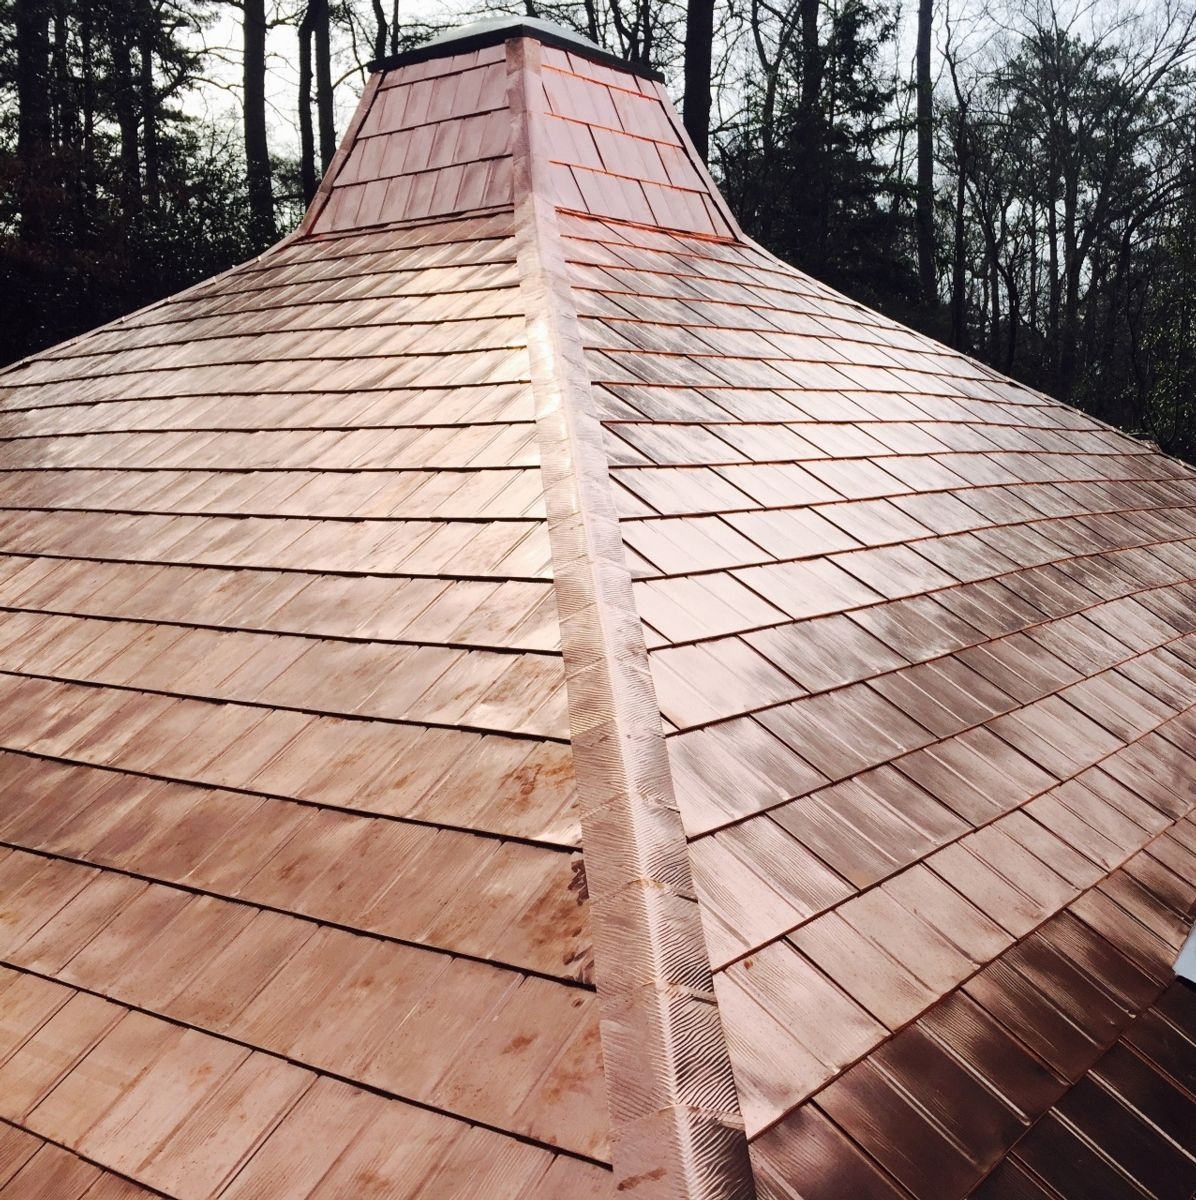 copper roofing 478 745 6563